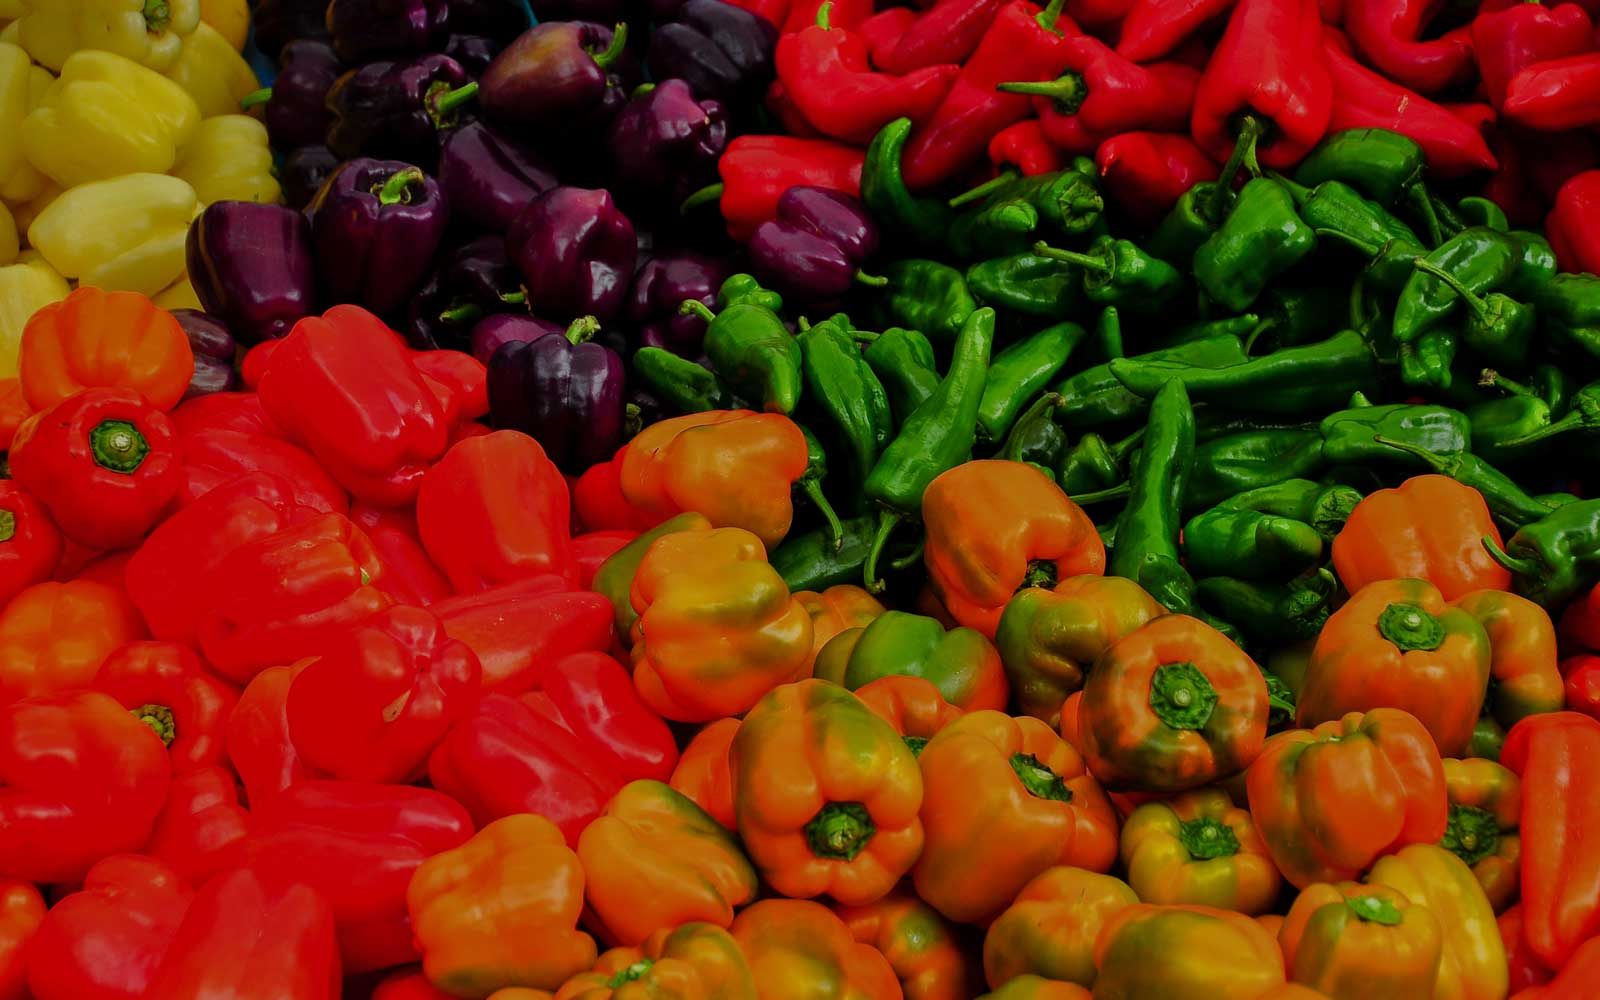 Take part in free cooking demonstrations at San Francisco's Ferry Building Farmer's Market.